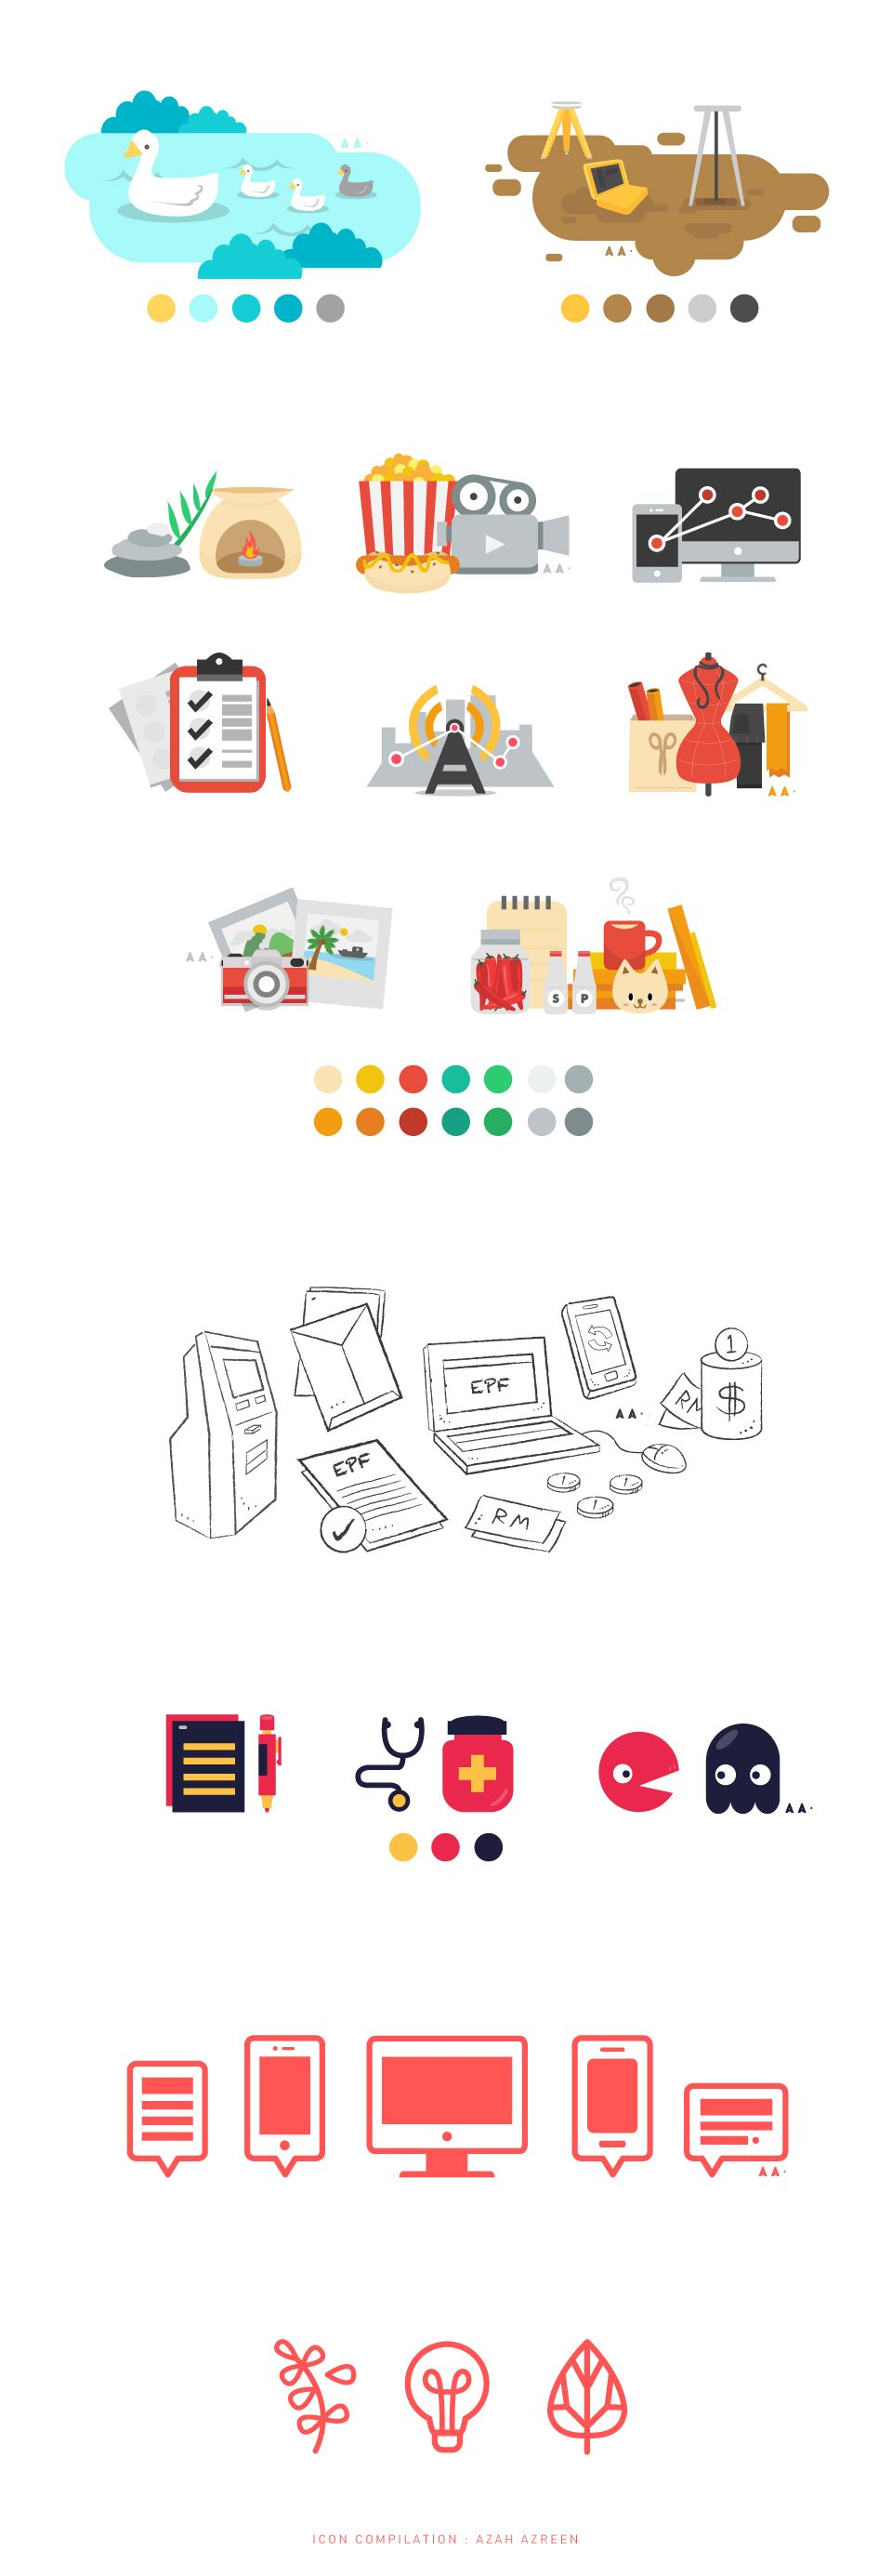 Icons - Compilation on Behance